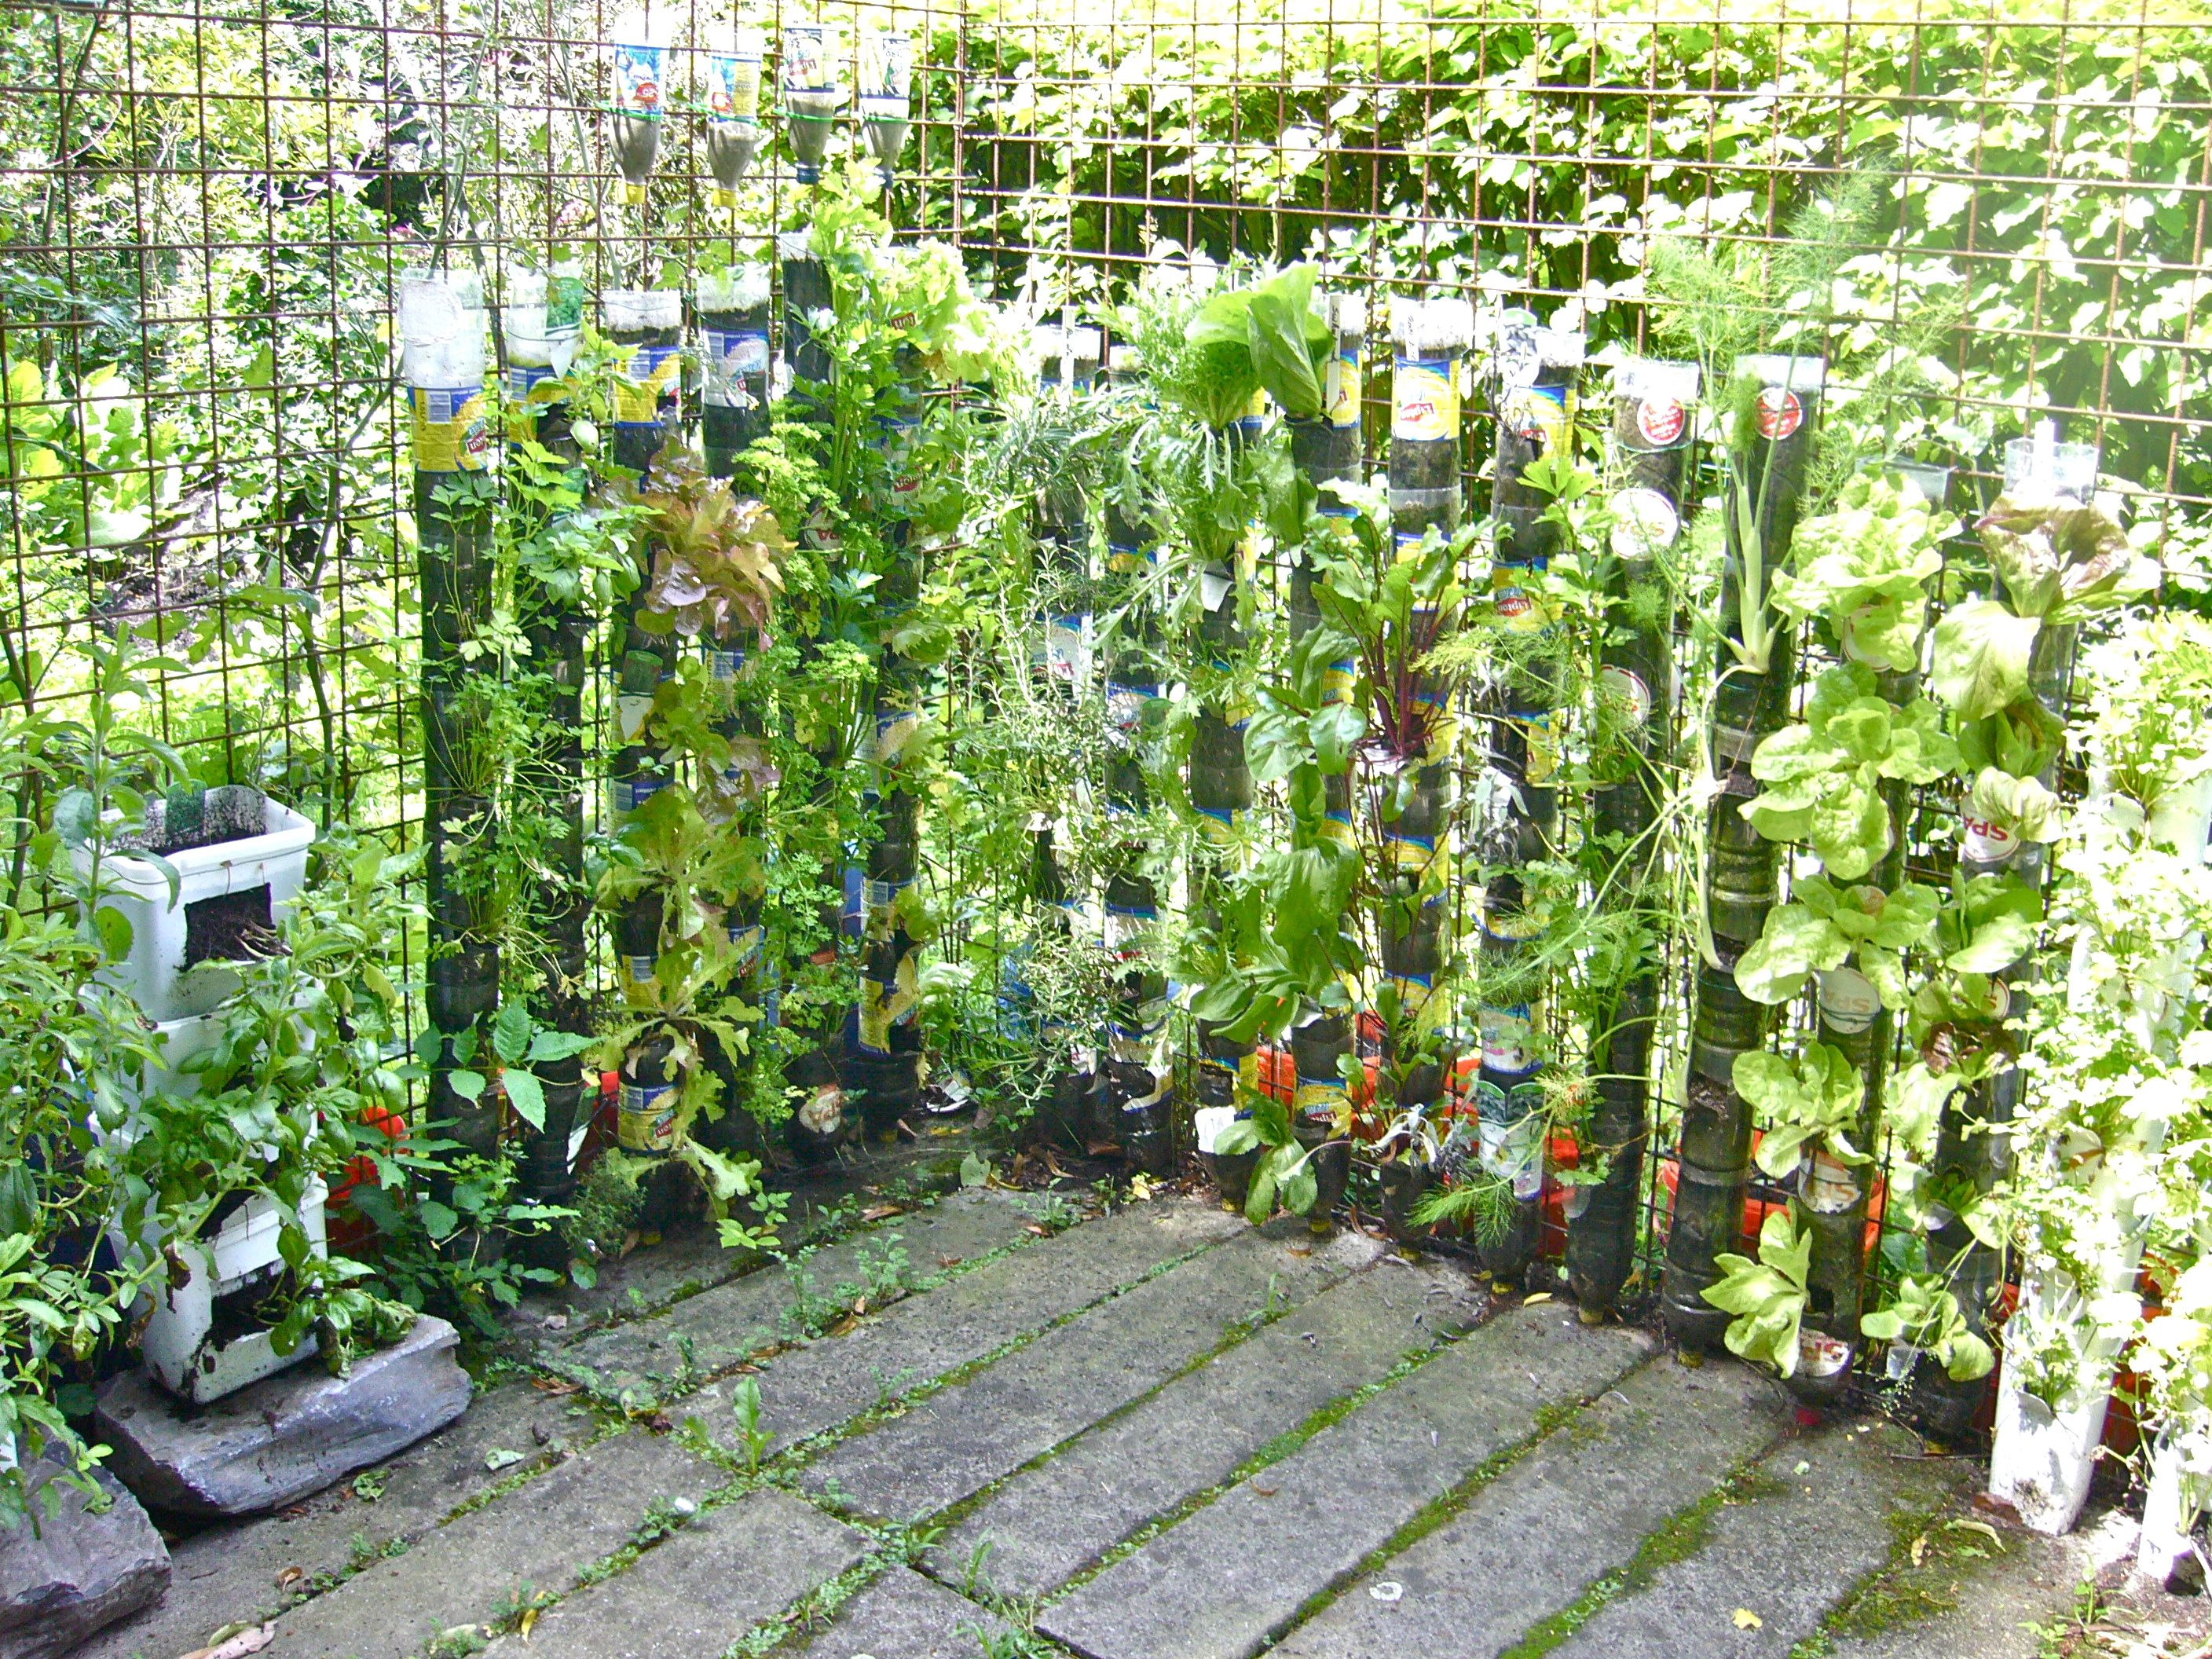 Urban gardening ideas containers - My Questions To Wfp Willem Van Cotthem Vertical Vegetable Gardensvegetable Gardeningcontainer Gardeningurban